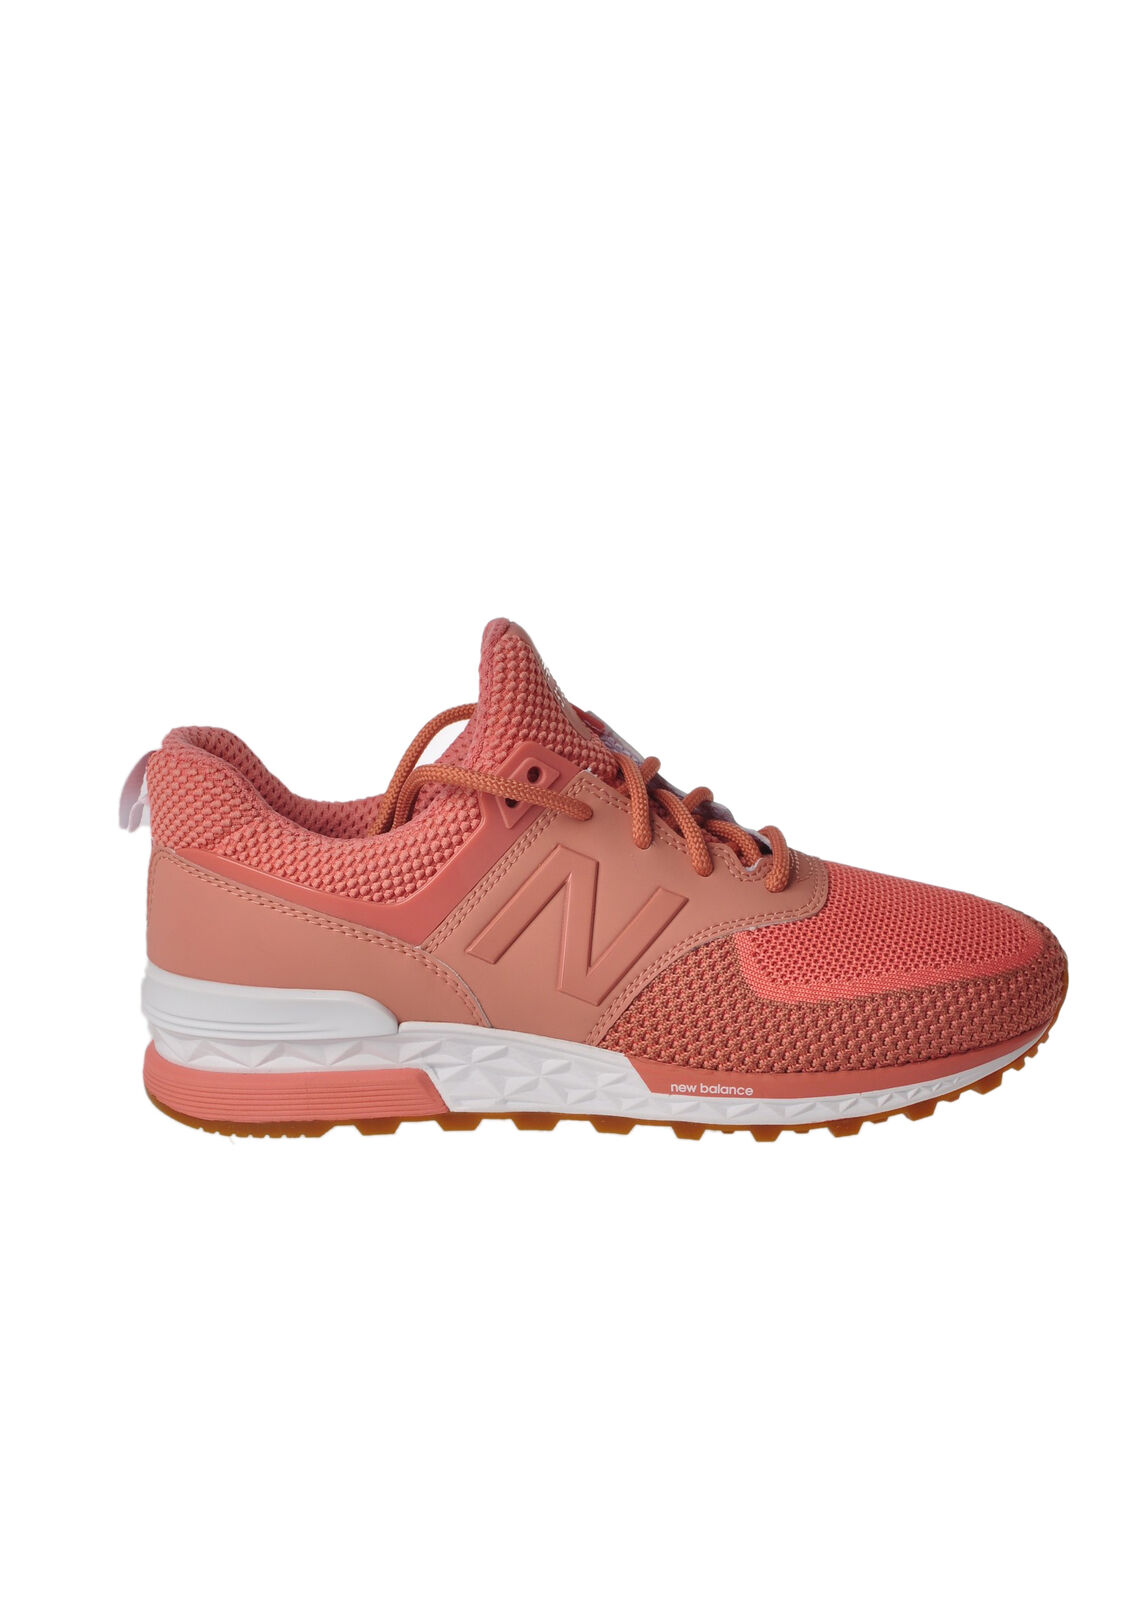 New Balance - chaussures-chaussures - Woman - rose - 4840521G184921